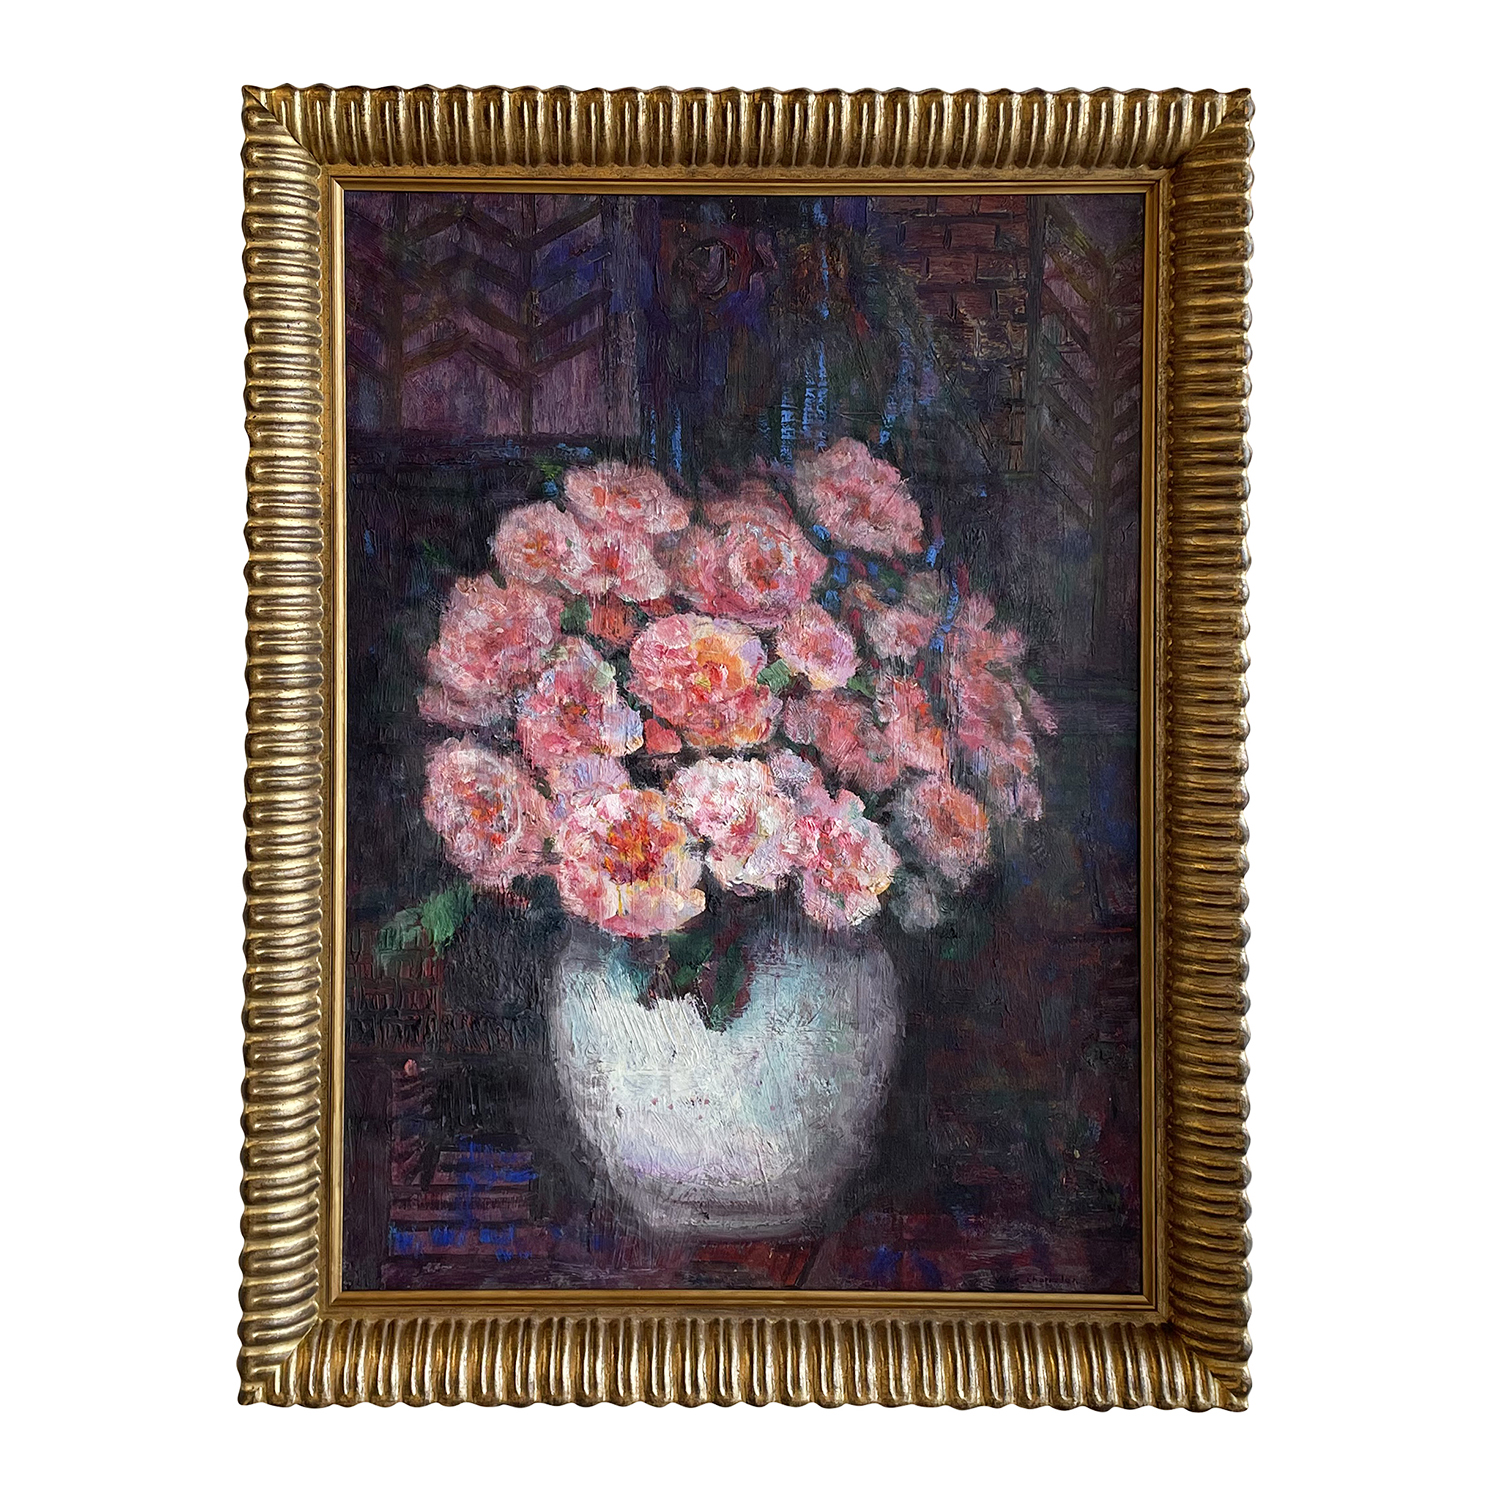 20th Century French Oil Painting of a Vase with Pink Flowers by Victor Charreton